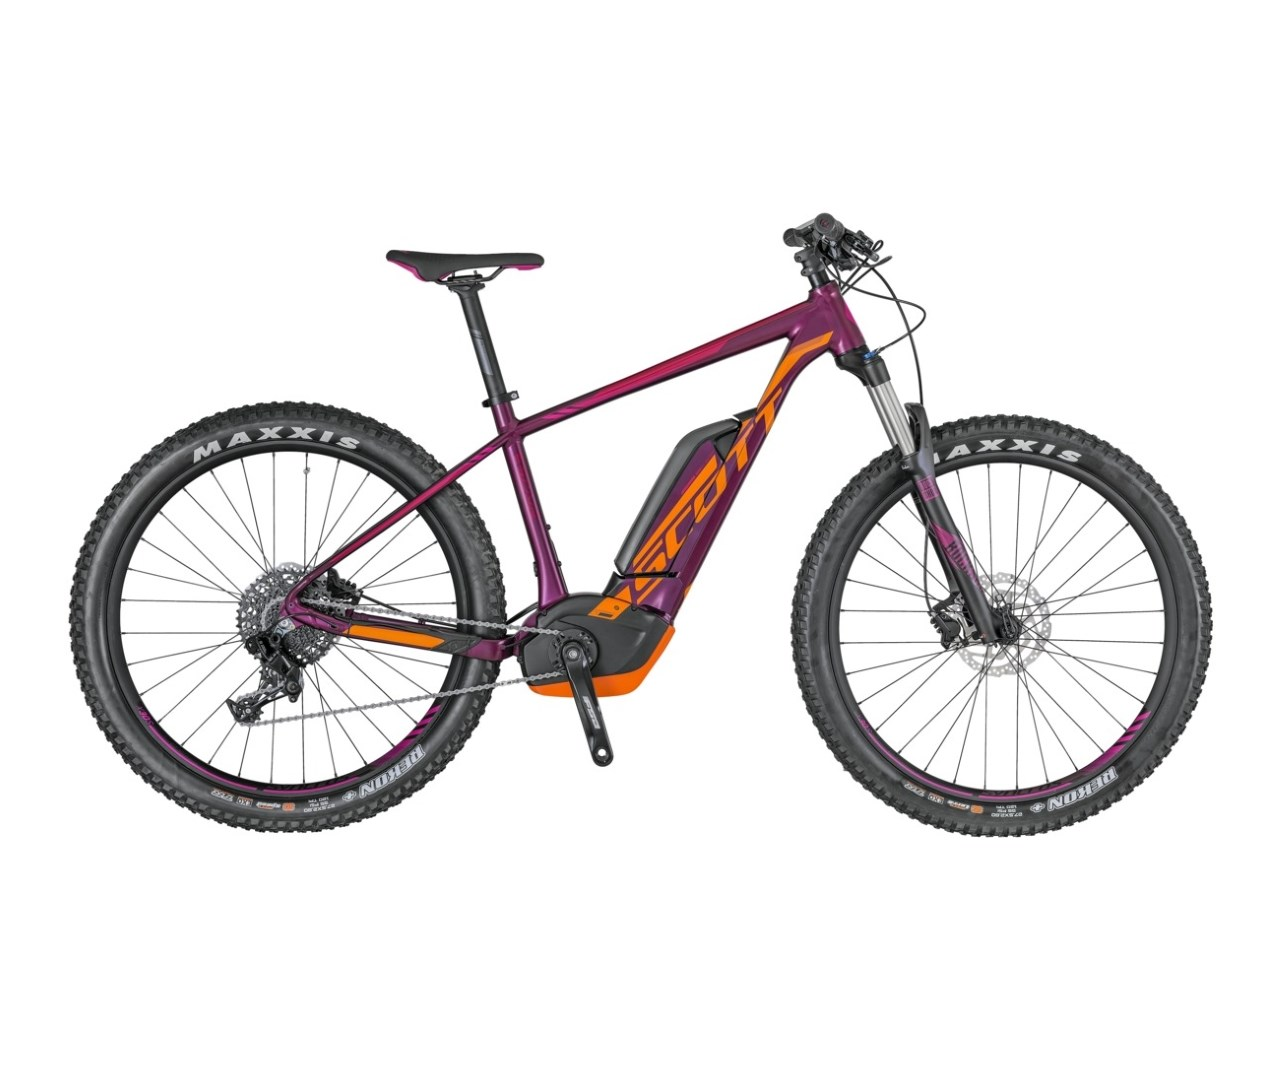 SCOTT E-Contessa Scale 730 (40cm) RRP £2,899.00